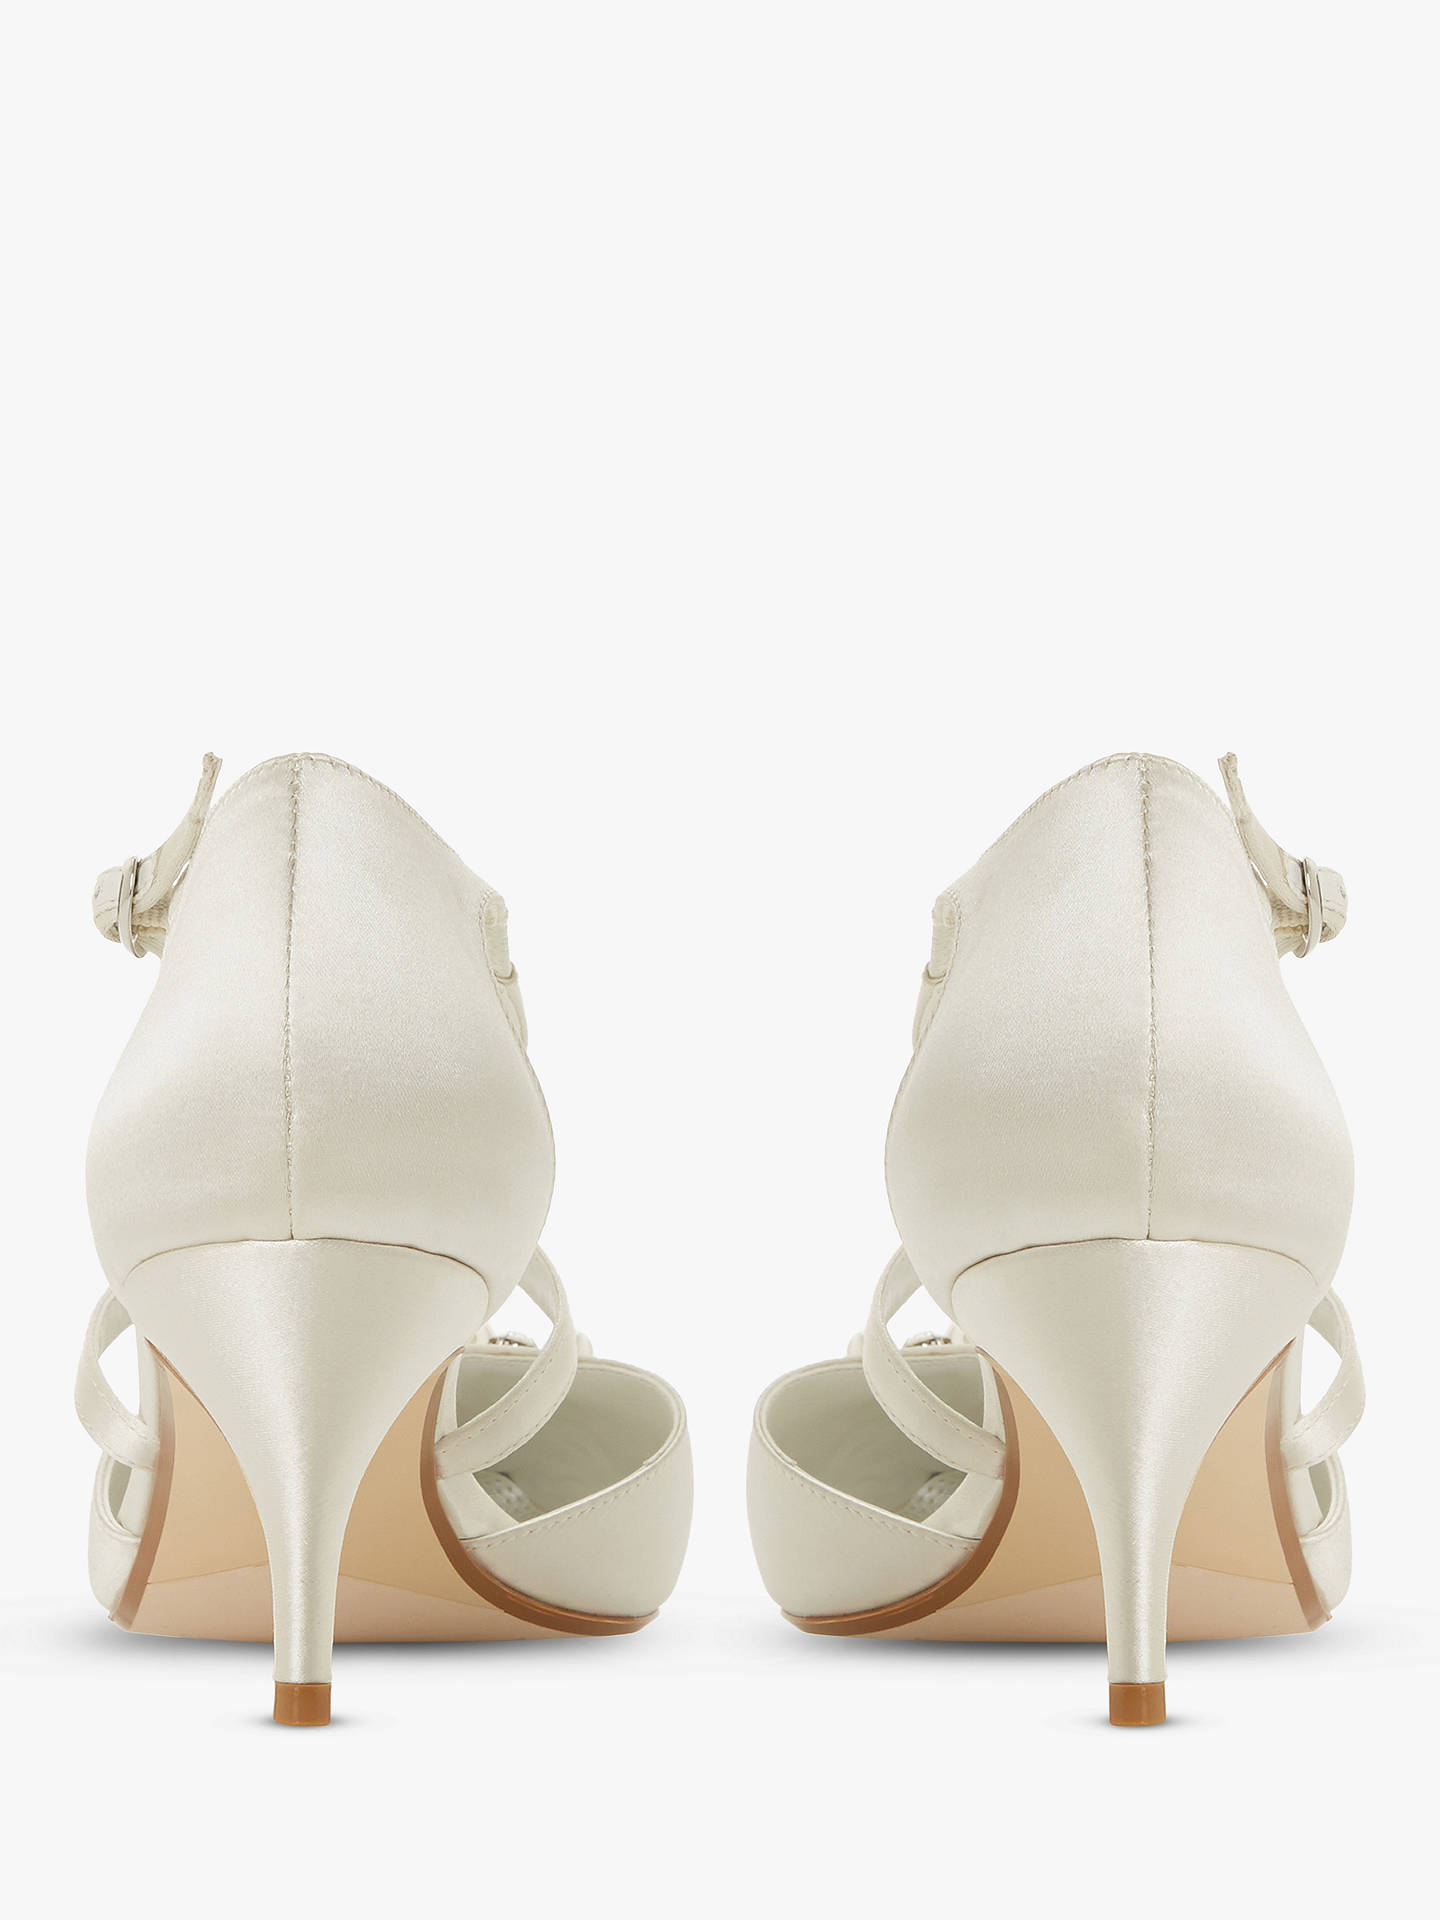 50a2eccb07ef8 ... Buy Dune Champagne Embellished Two Part Kitten Heel Court Shoes, Ivory  Satin, 6 Online